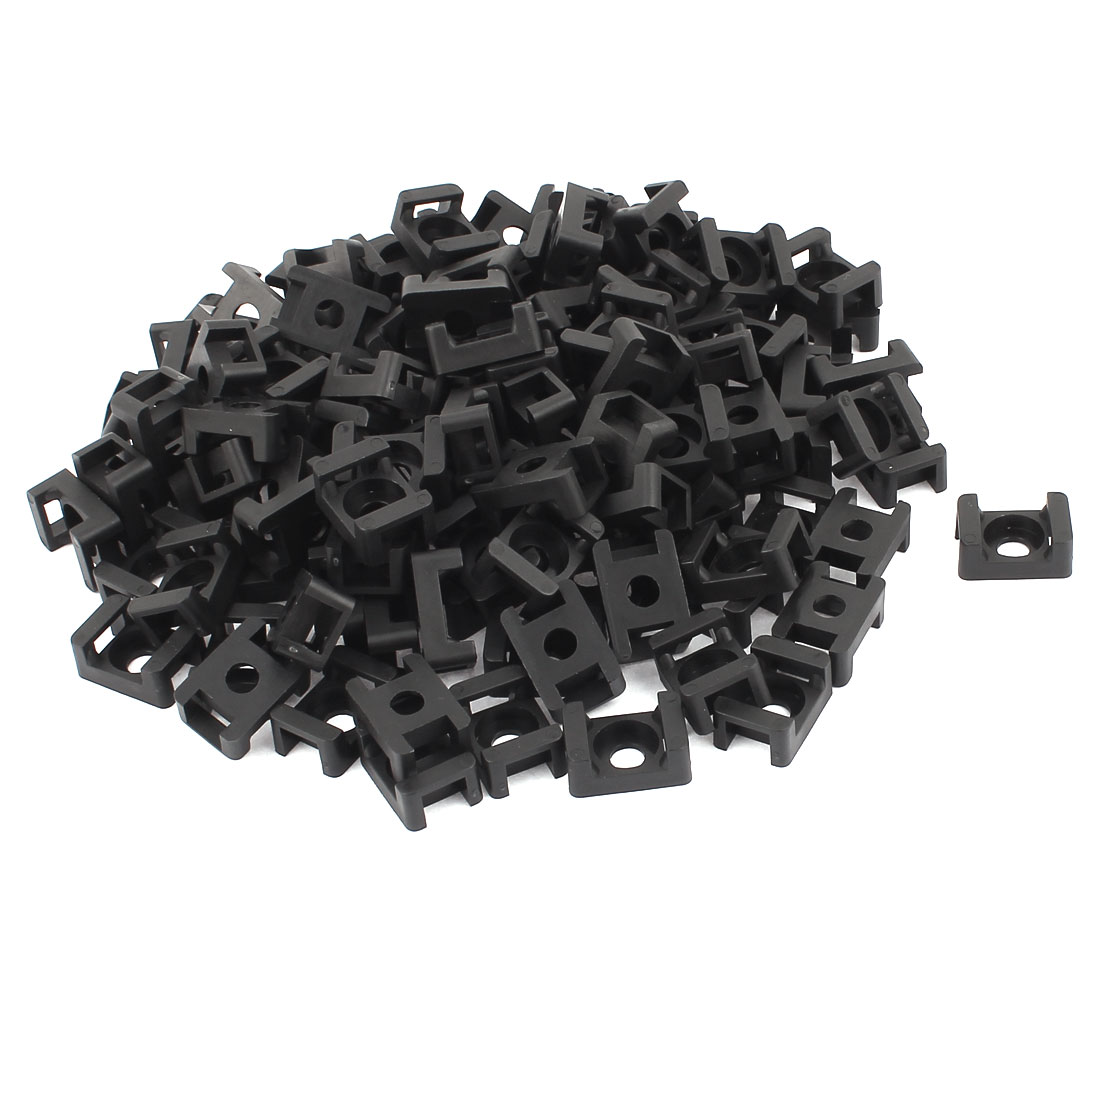 125 Pcs Black Plastic Wire Bundle Cable Tie Mount Saddle Cradle